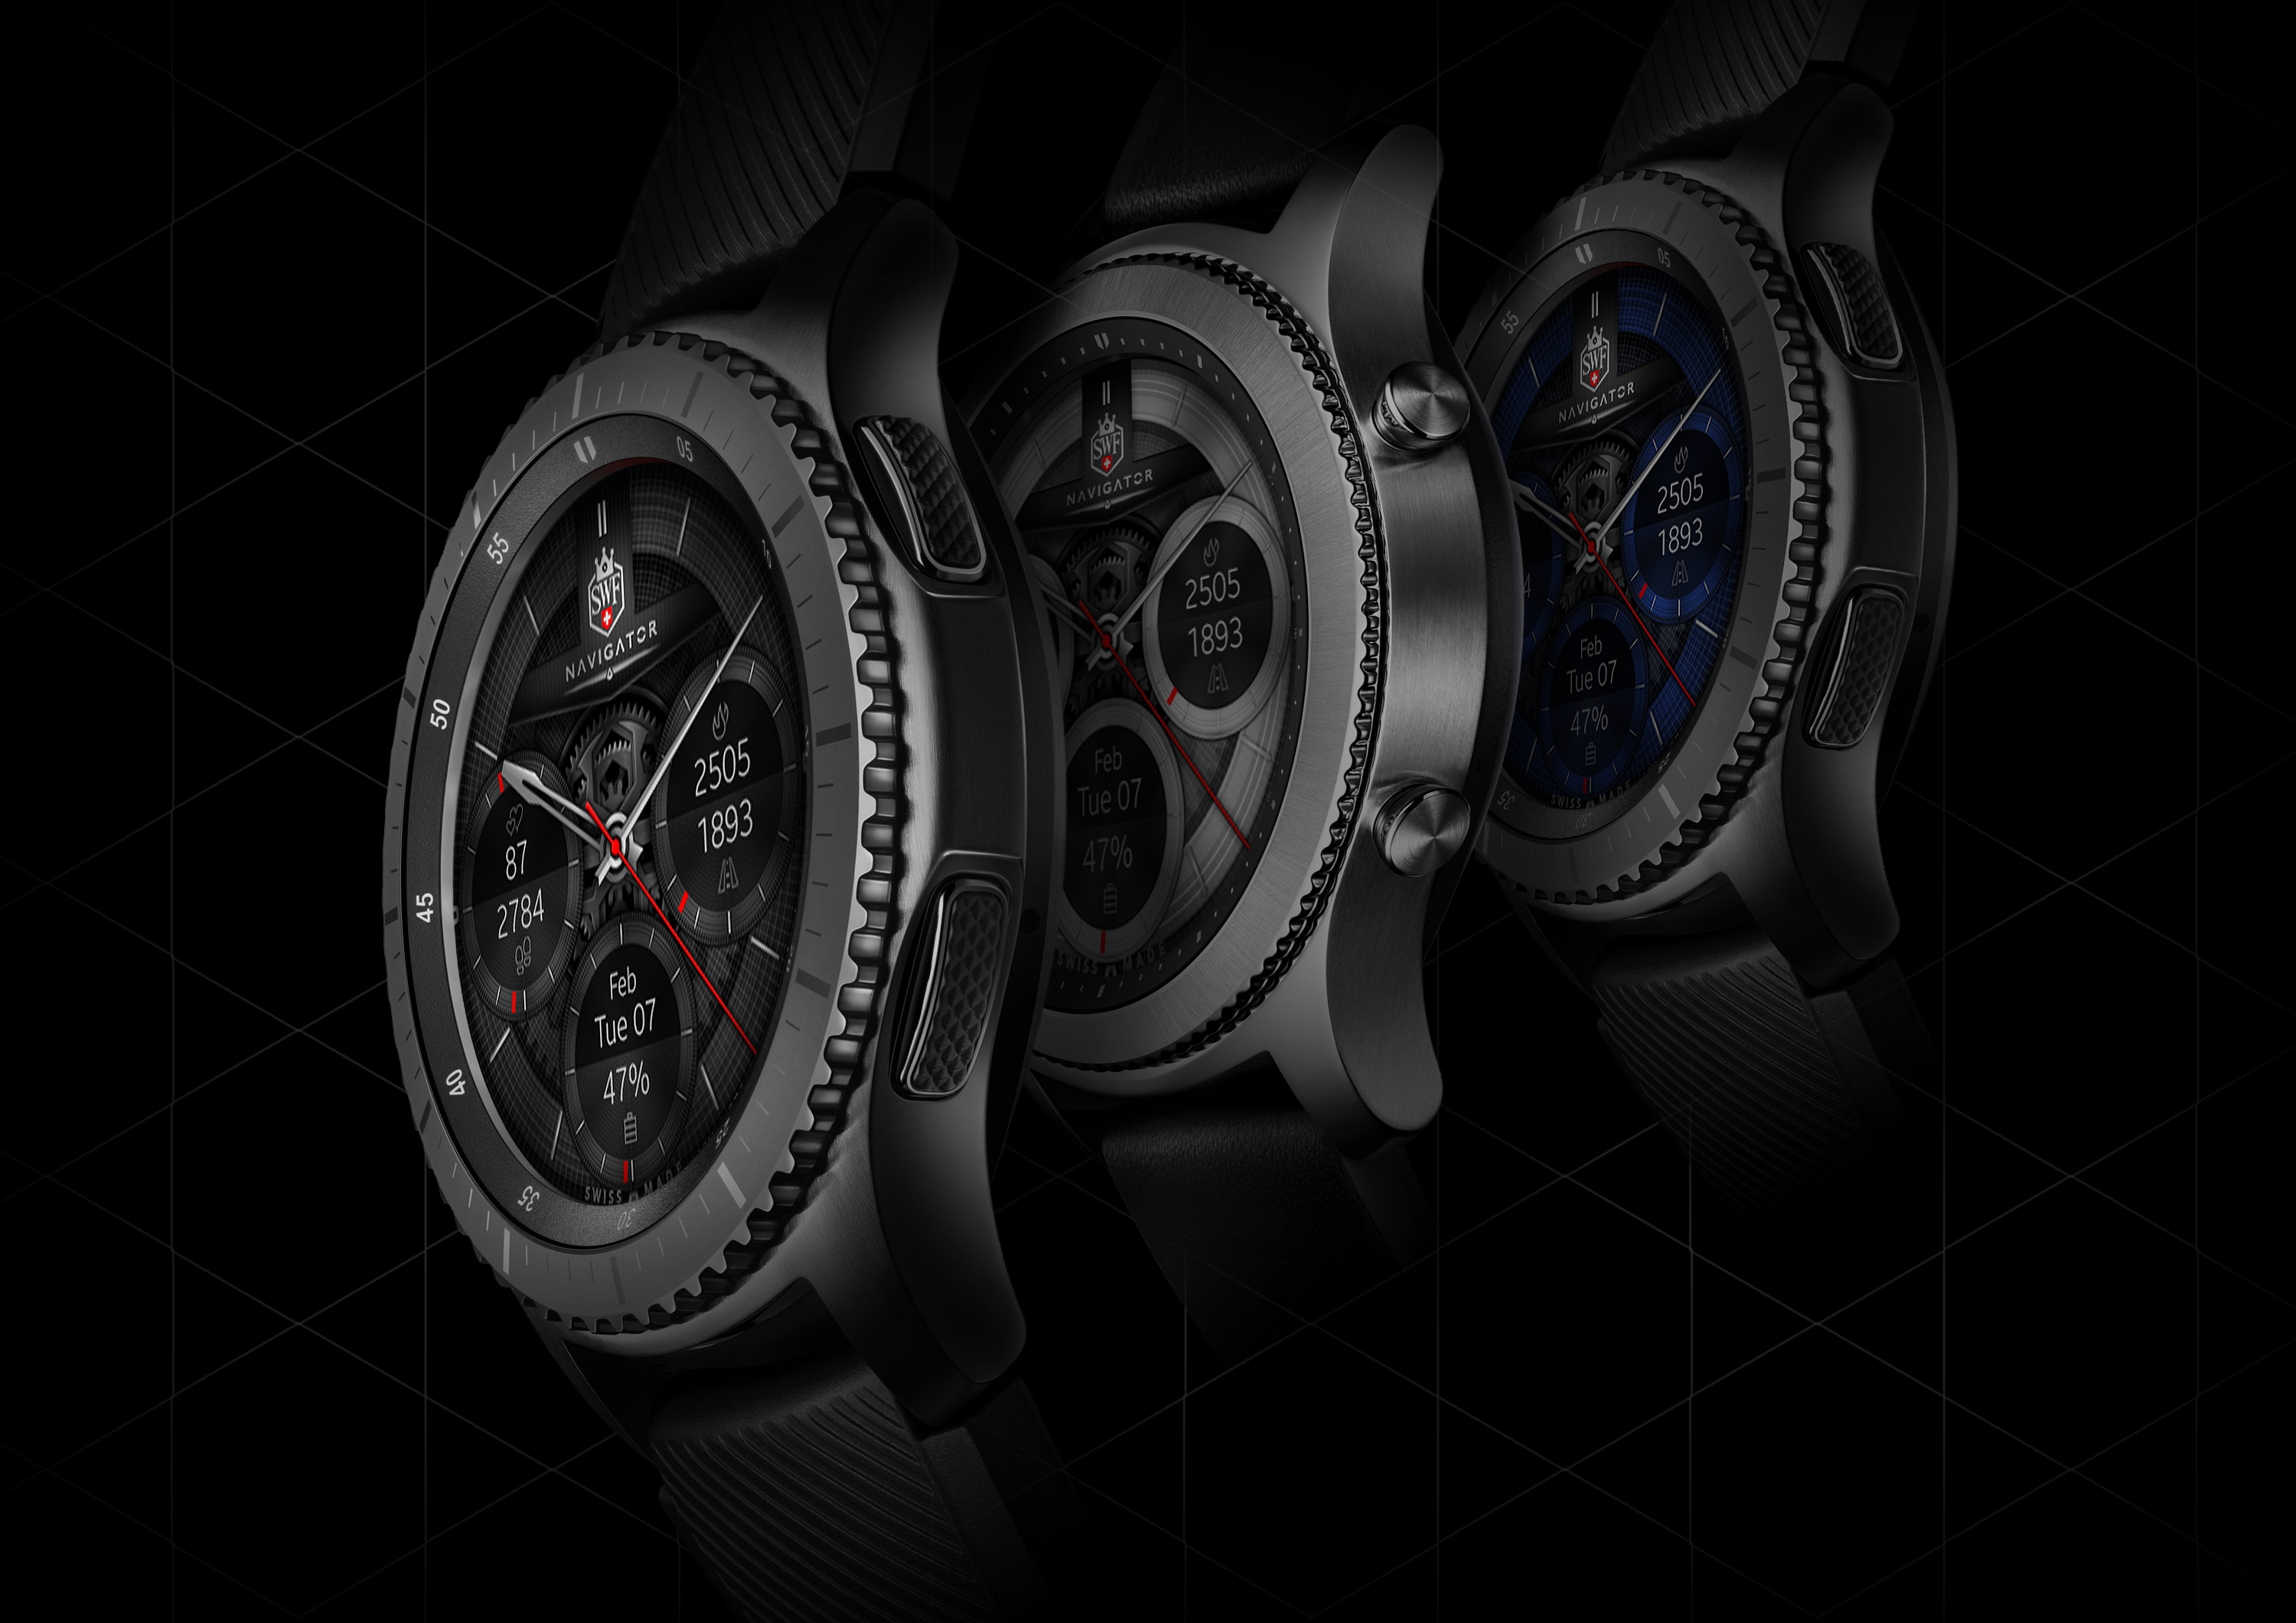 Navigator Series - Watch Face | SWF Swiss Watch Face